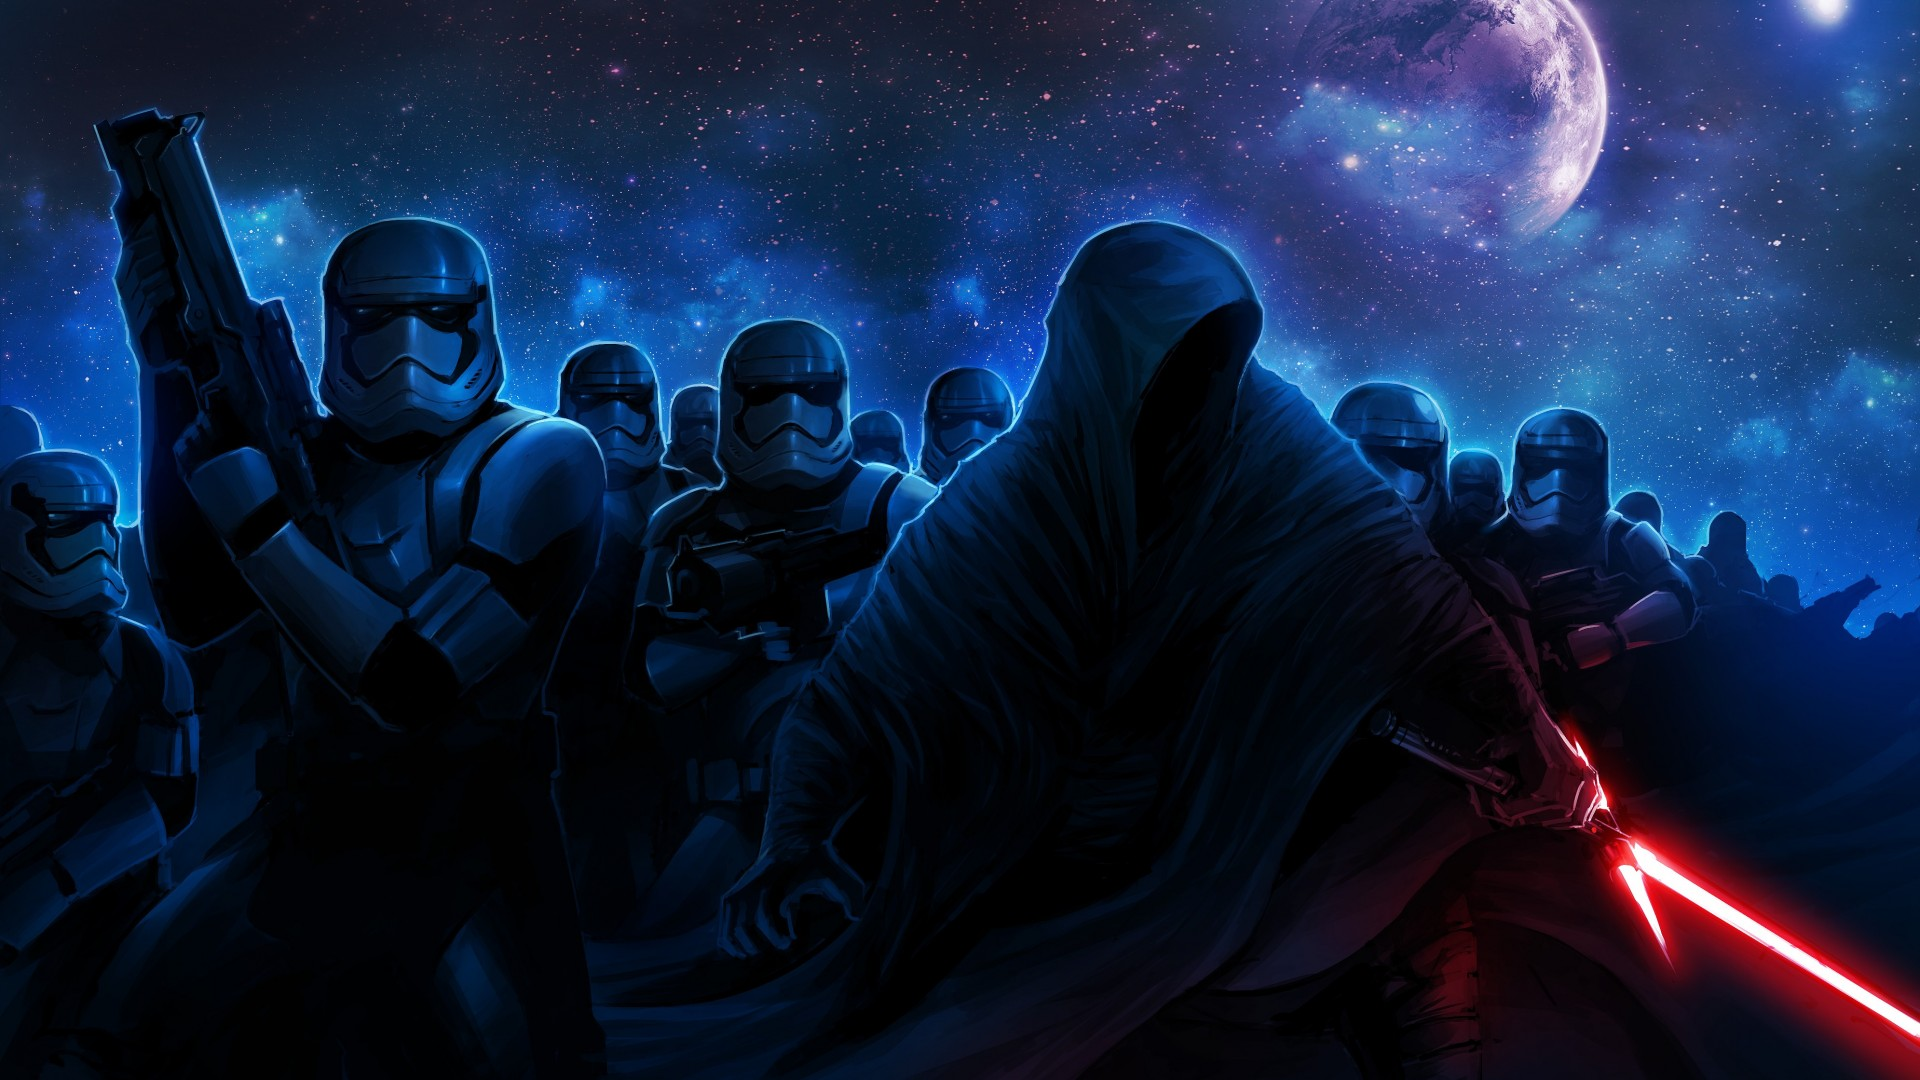 Star Wars: The Force Awakens, Star Wars 7, movie, film, imperial stormtroopers, episode, force, jedi, lightsaber, sith, stars, planet, sky, art (horizontal)